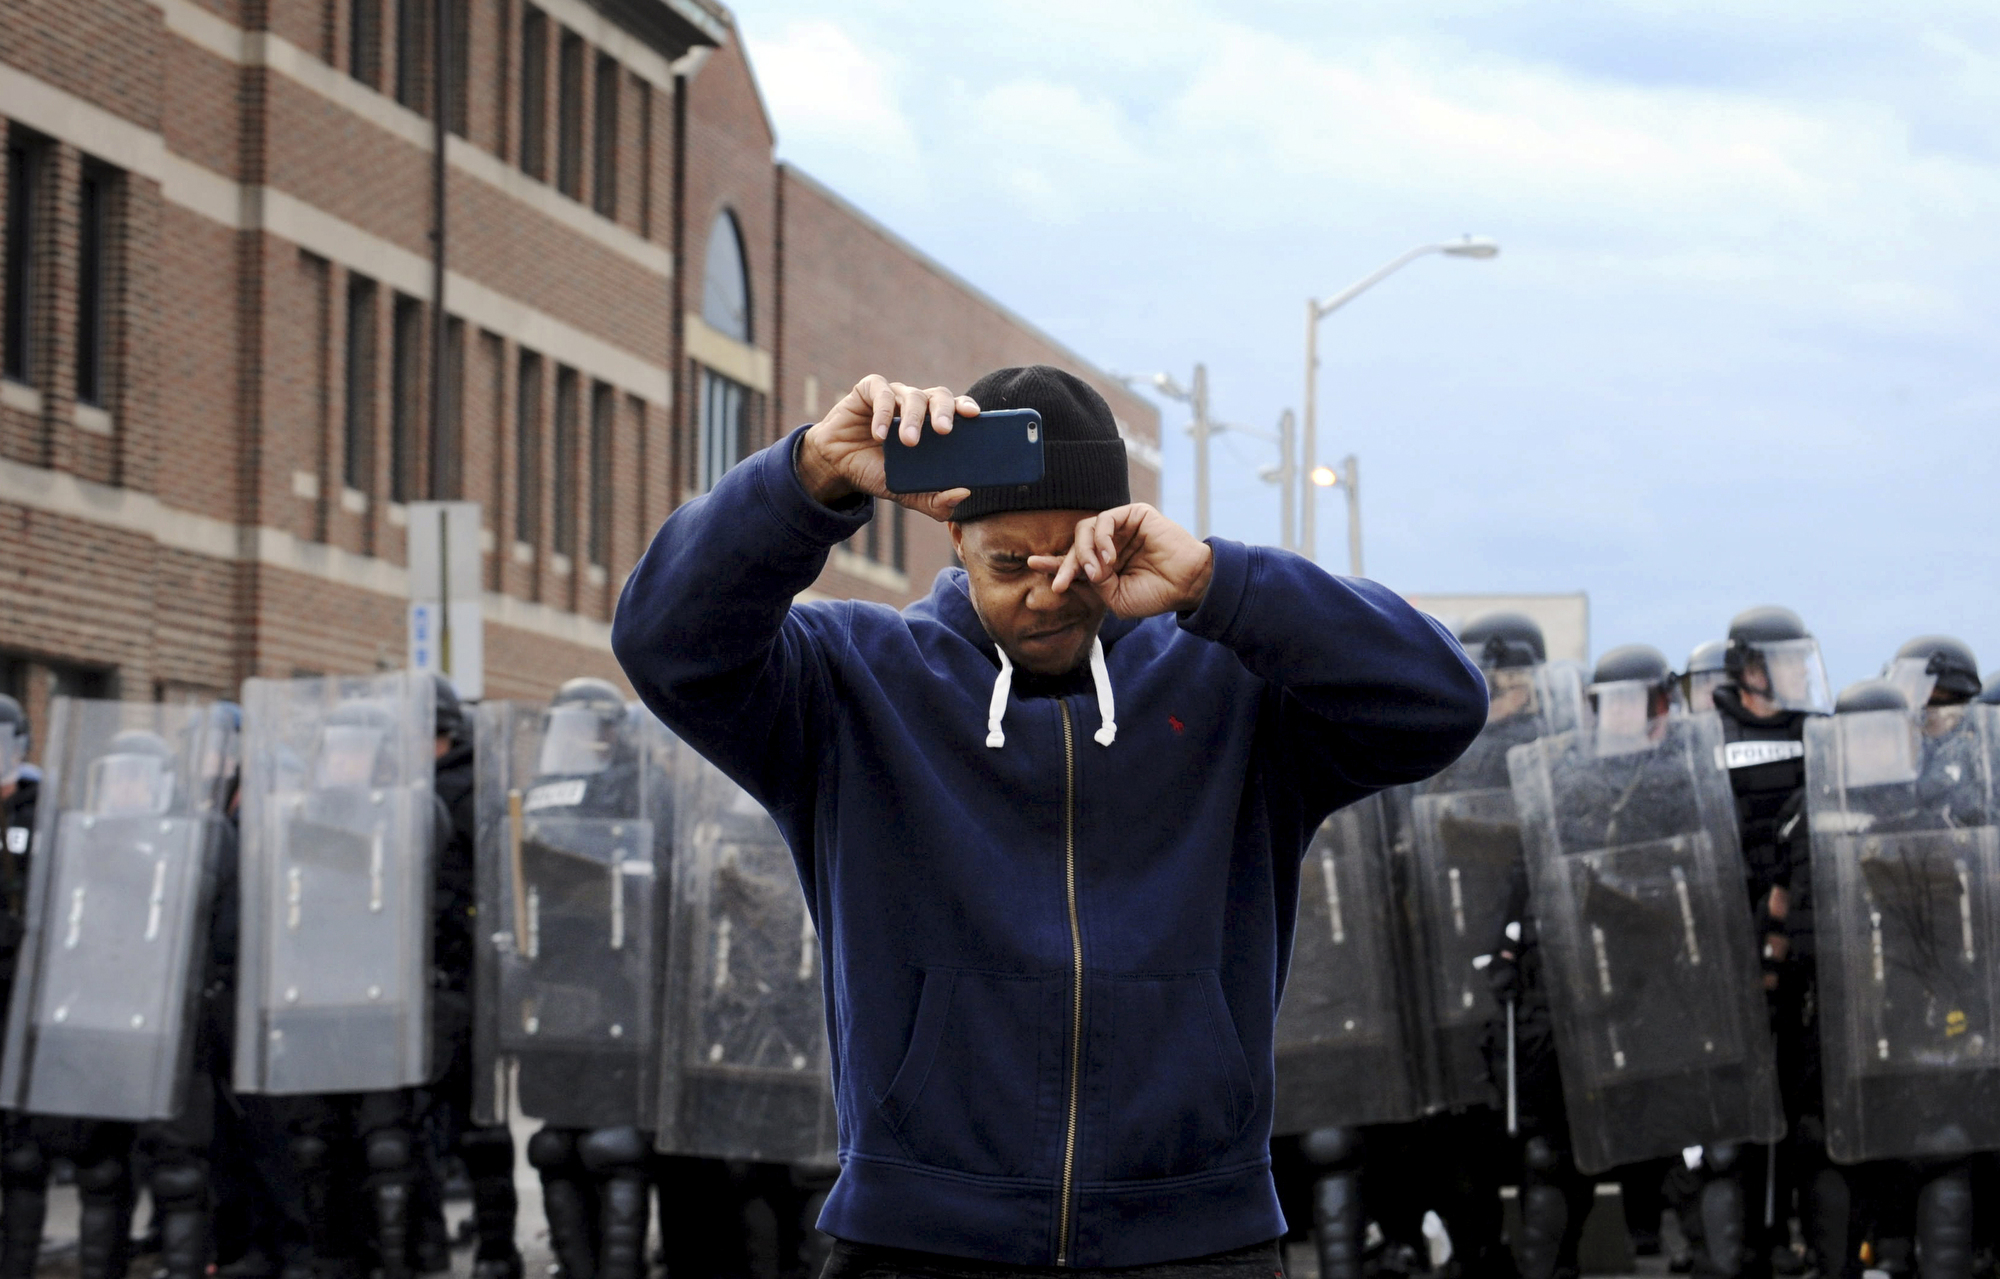 Baltimore unrest: A look back at April 27, 2015